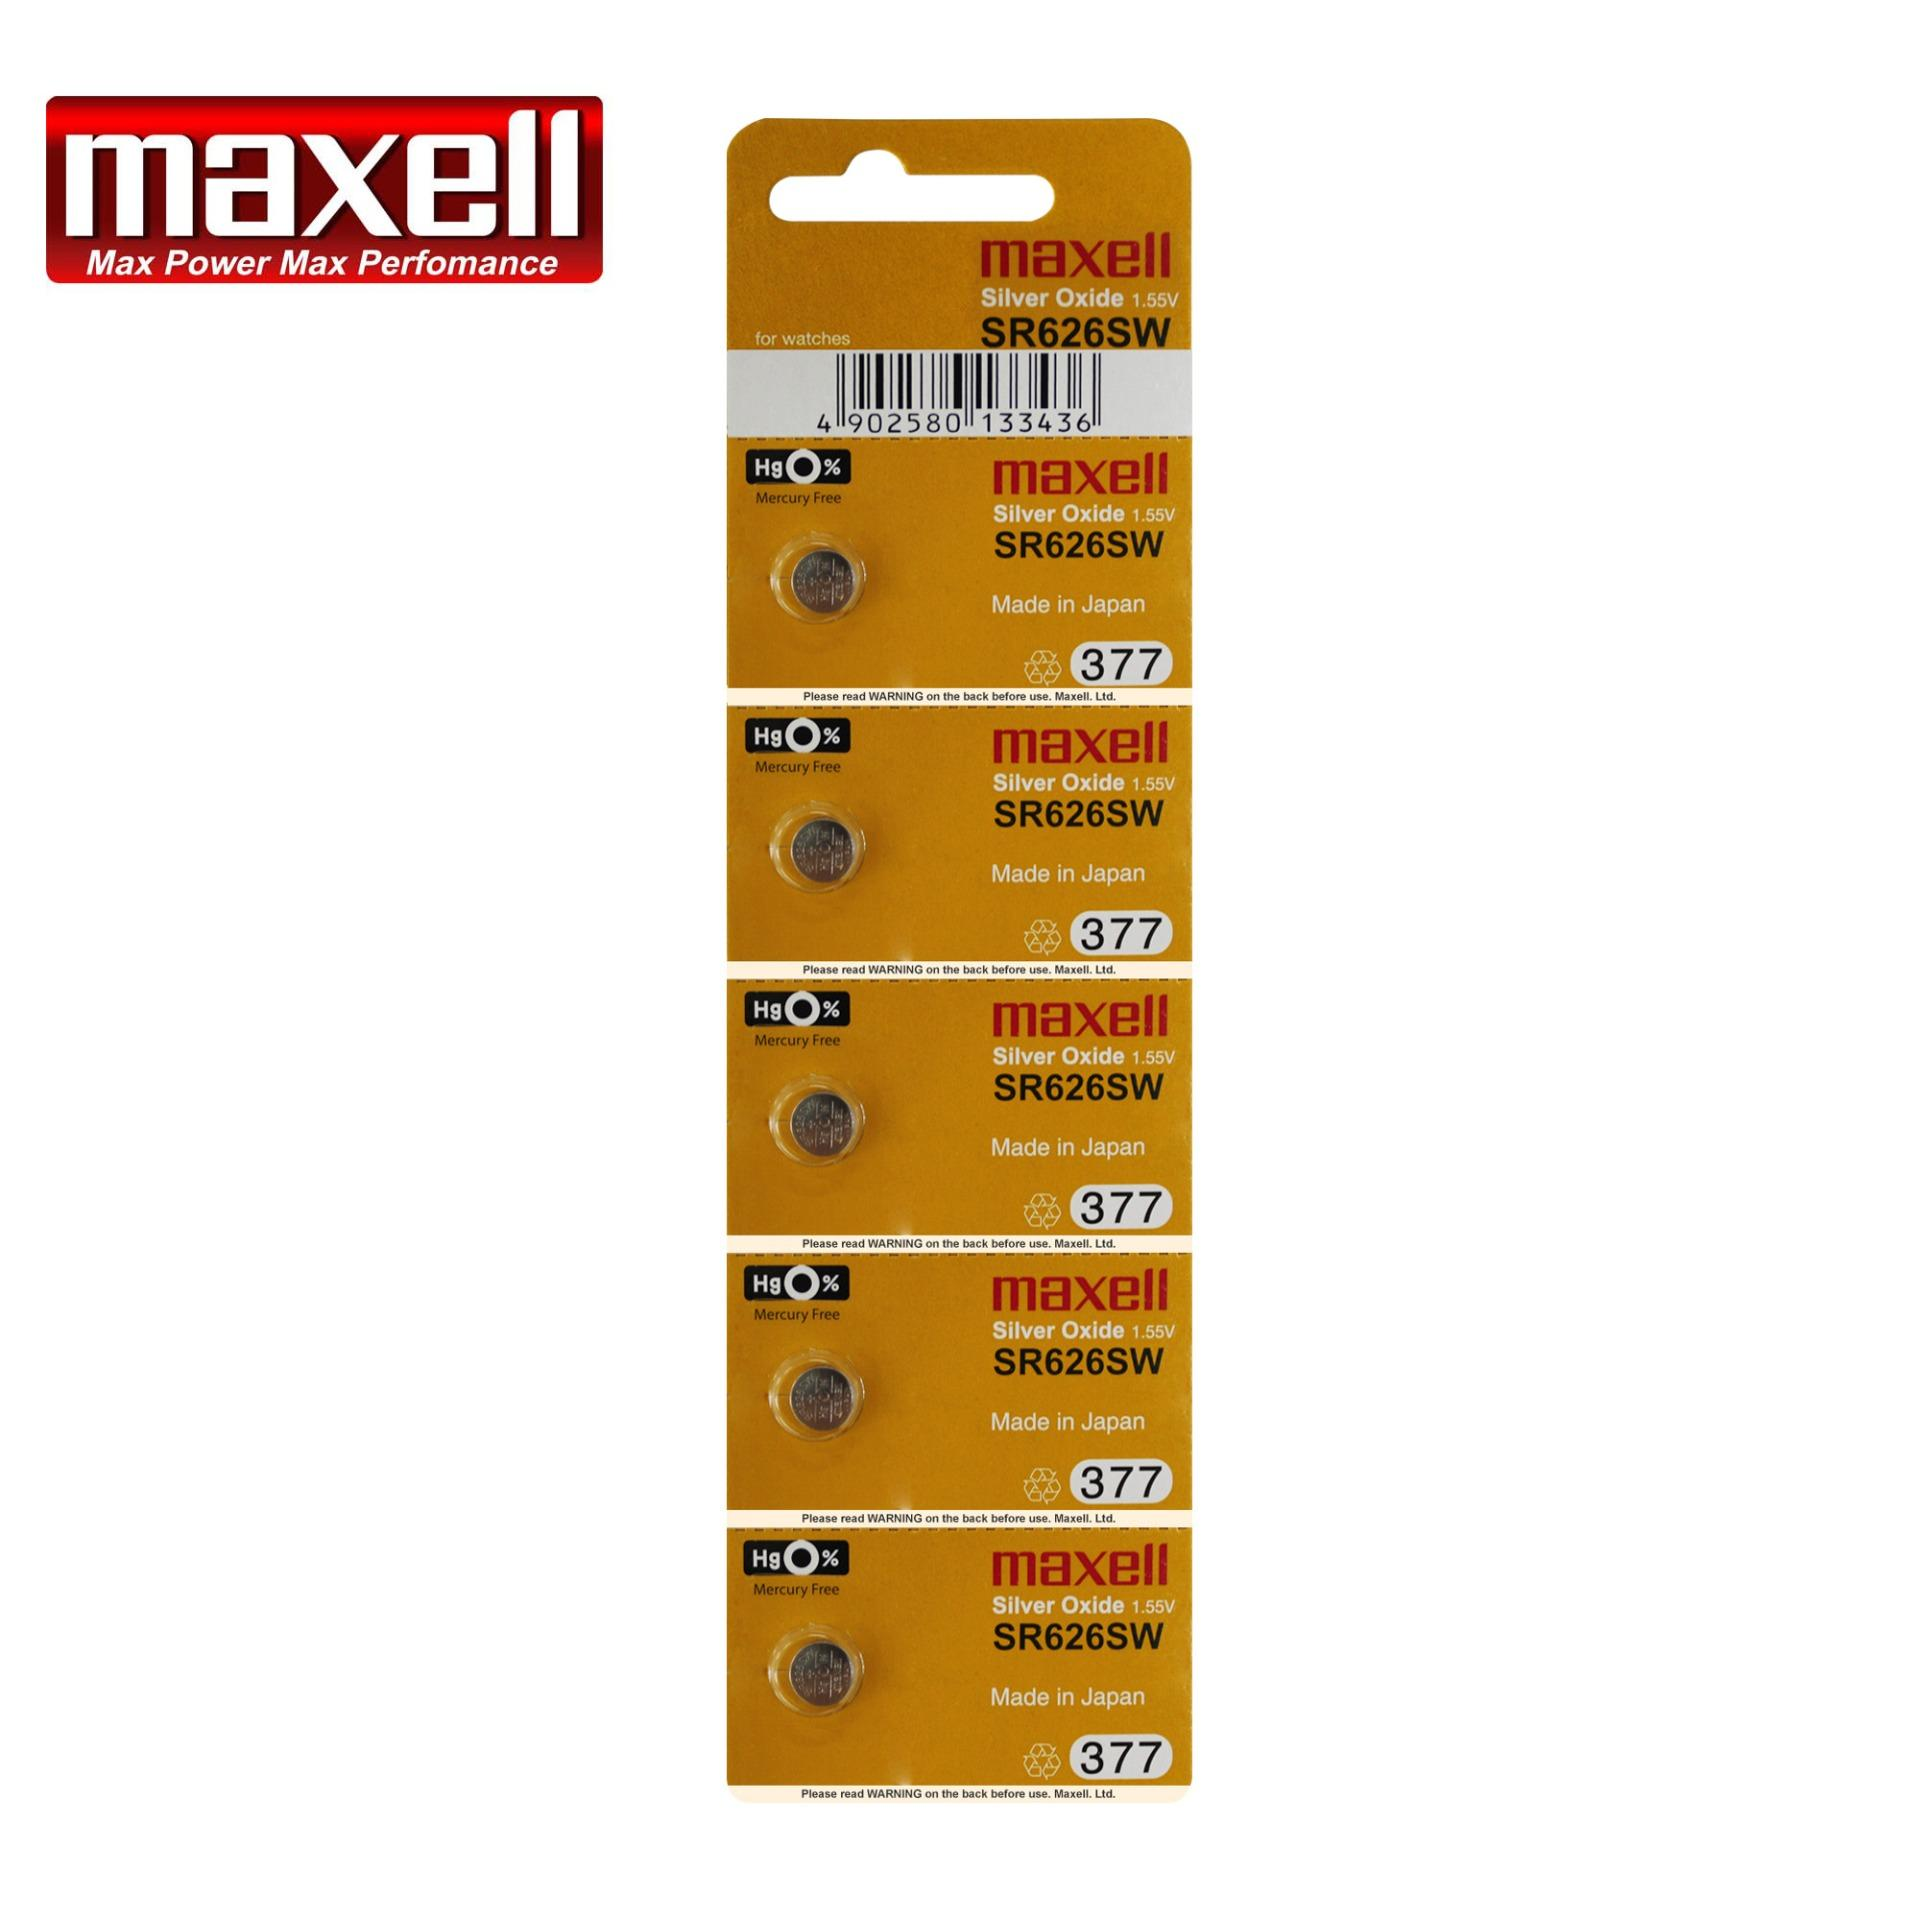 Maxell Philippines  Maxell price list - Battery for sale  eb44b1f6c7d3c